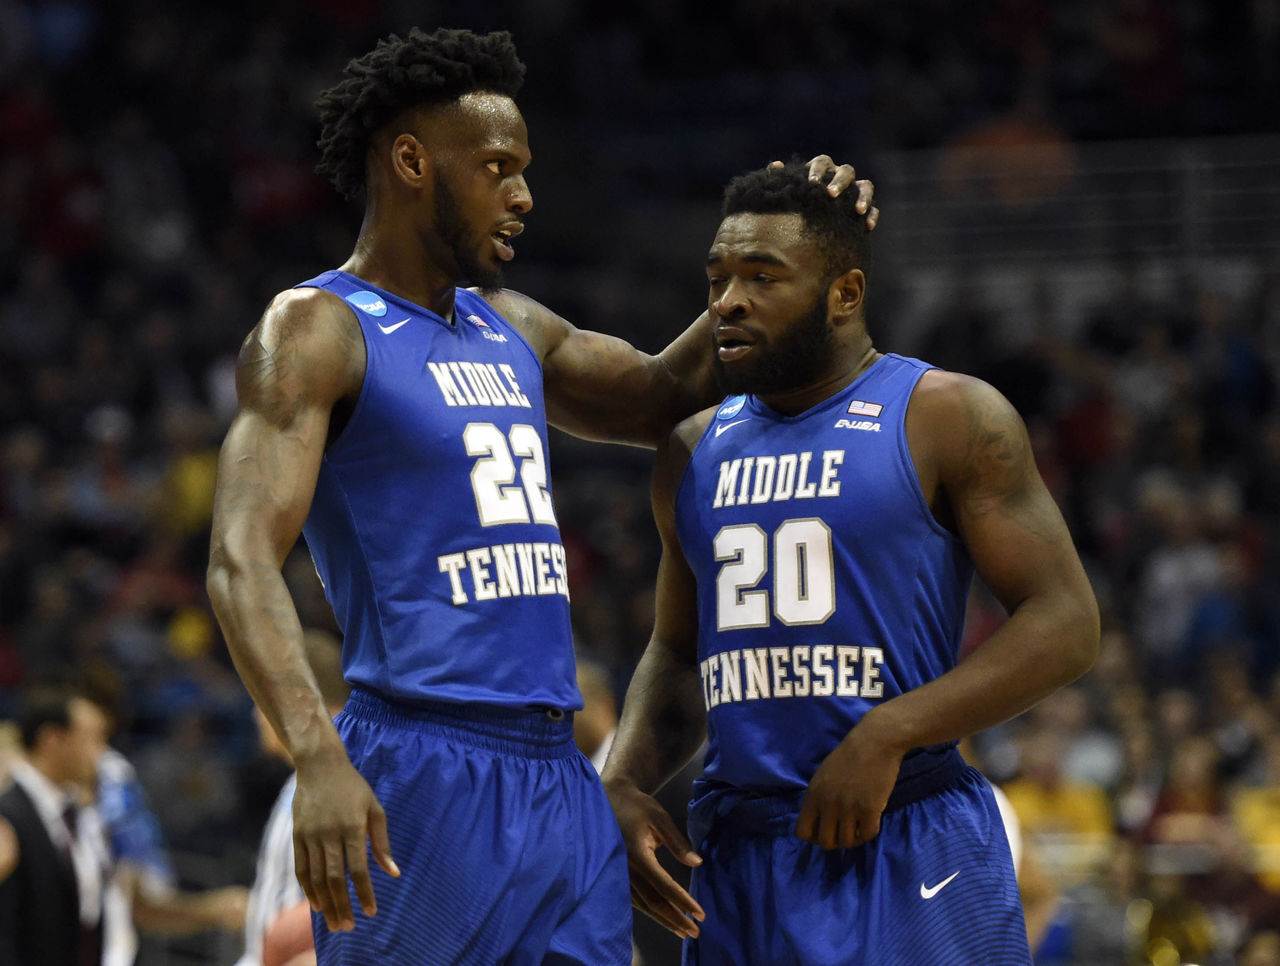 Cropped 2017 03 16t223258z 1542677620 nocid rtrmadp 3 ncaa basketball ncaa tournament first round minnesota vs middle tennessee state